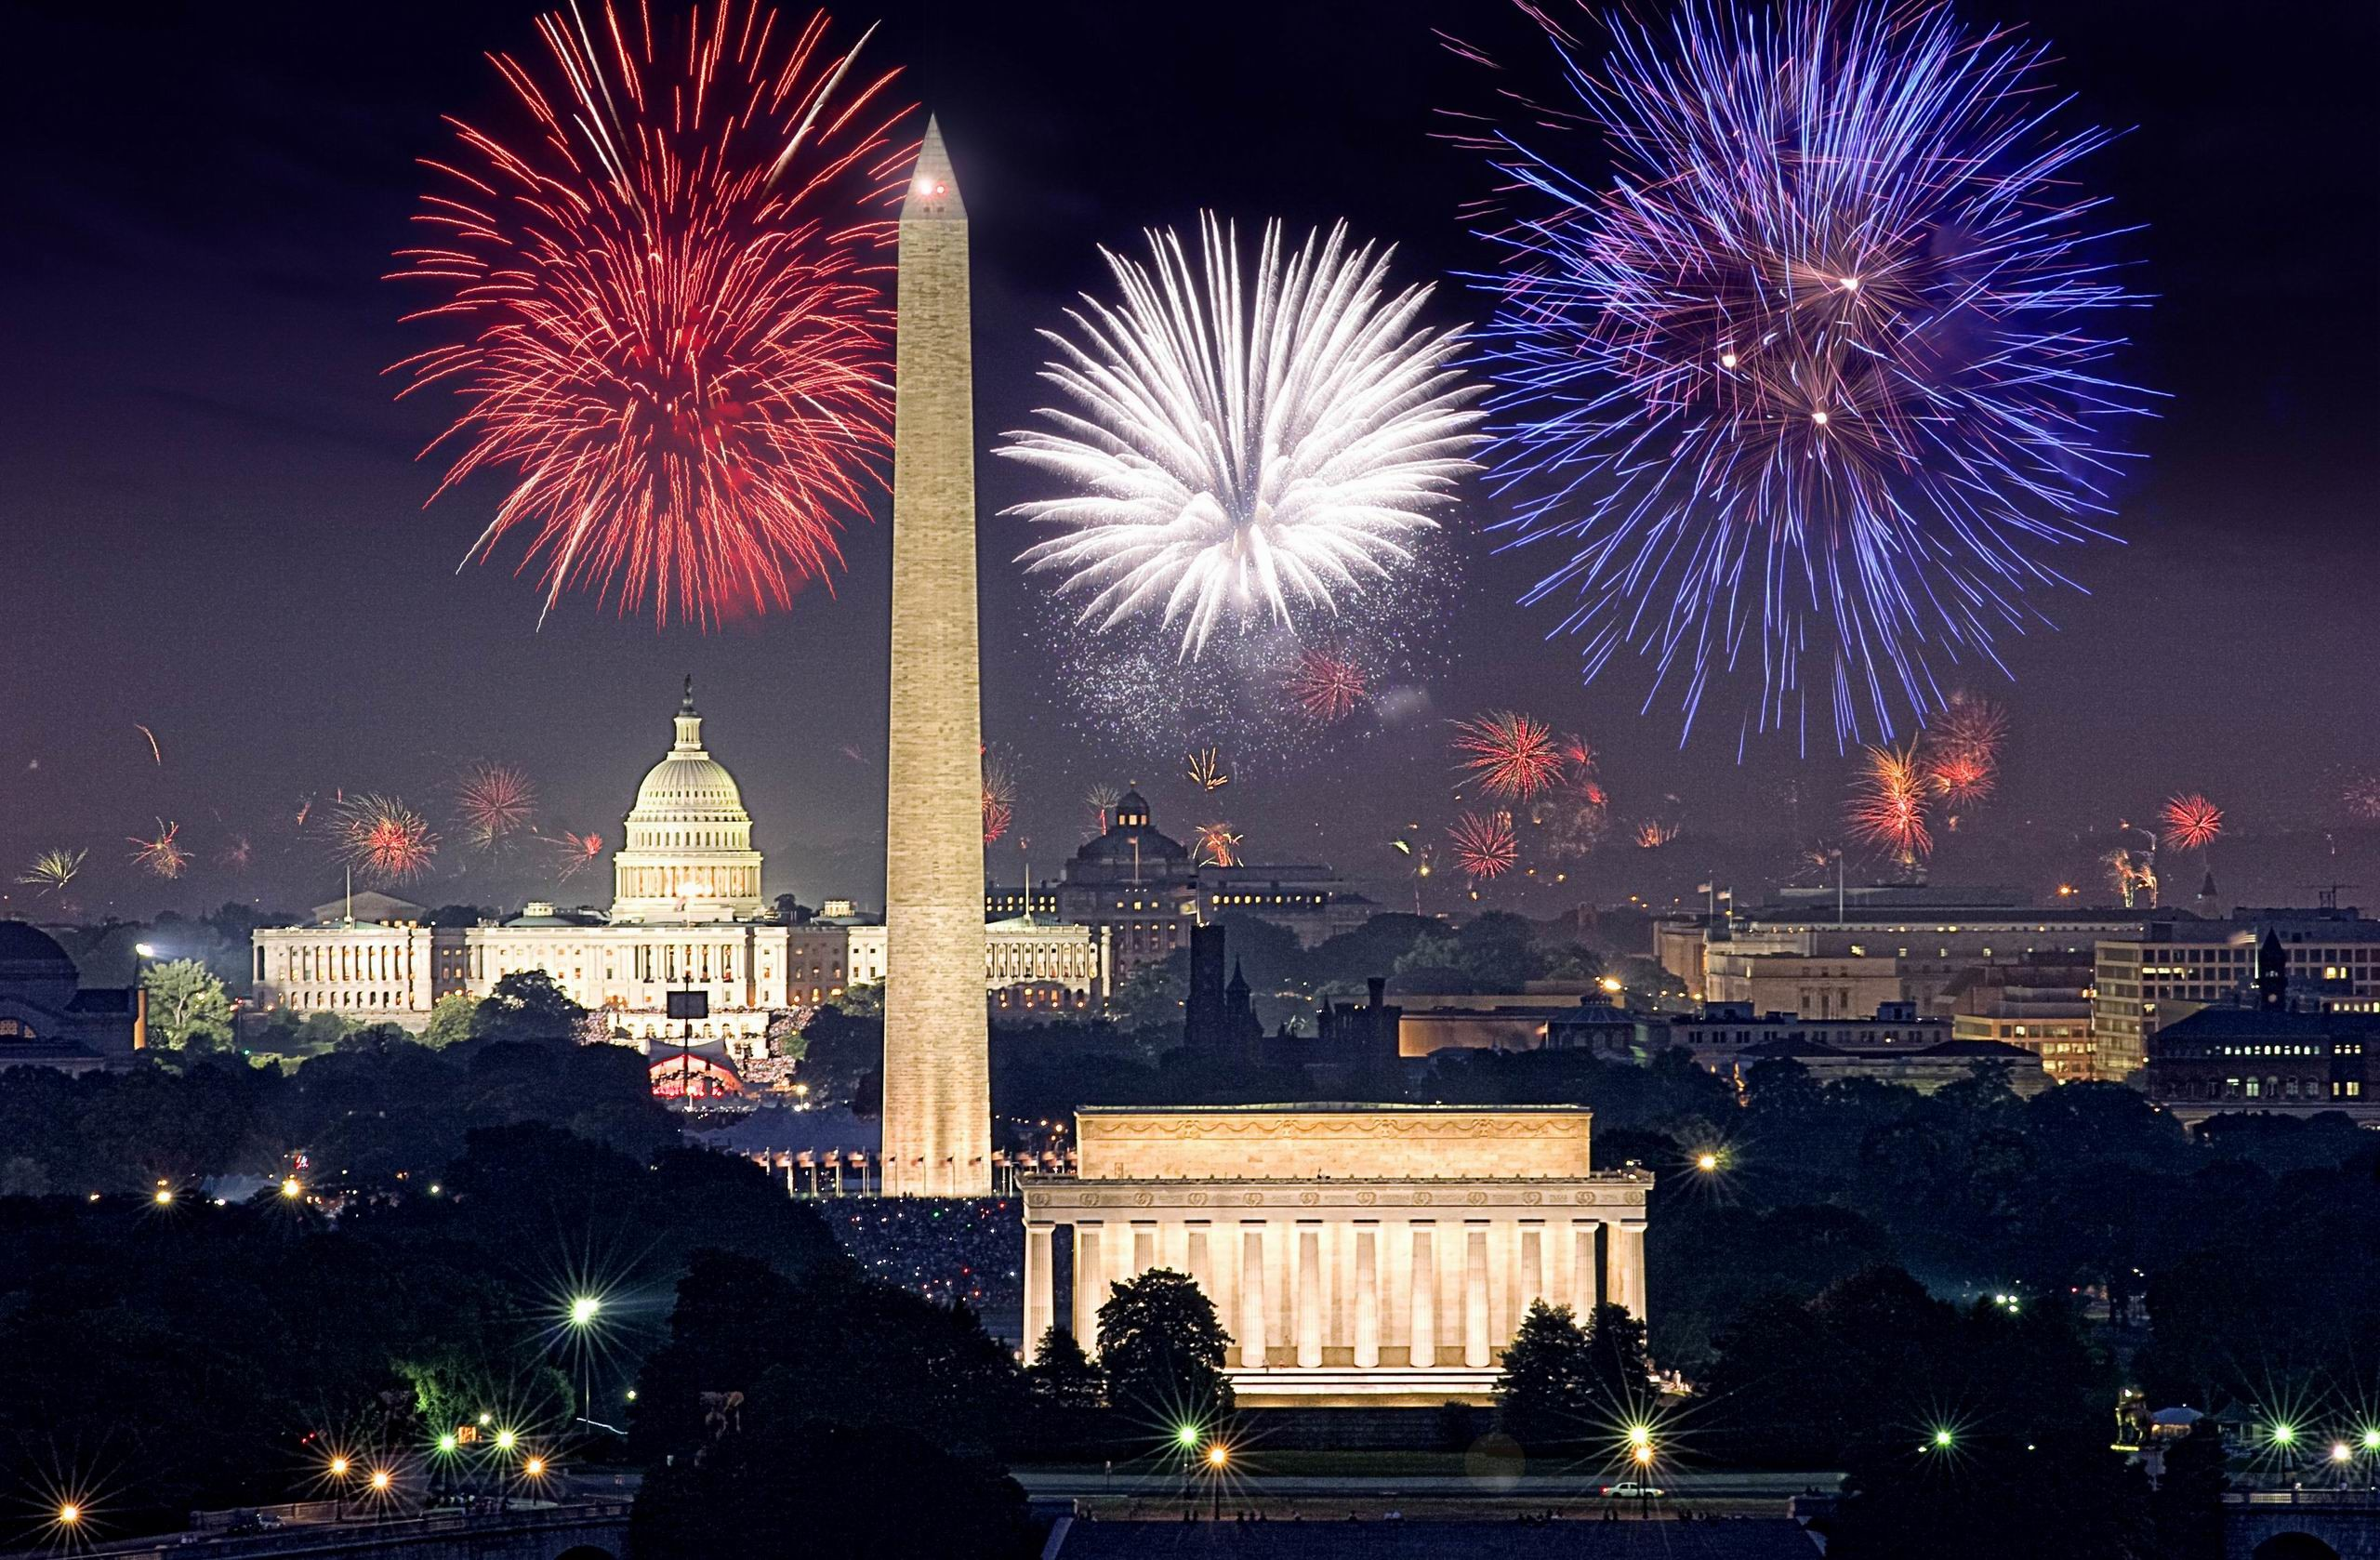 2560x1678 Firework At Washington DC Photo HD Wallpaper For Desktop | Wallsev.com .